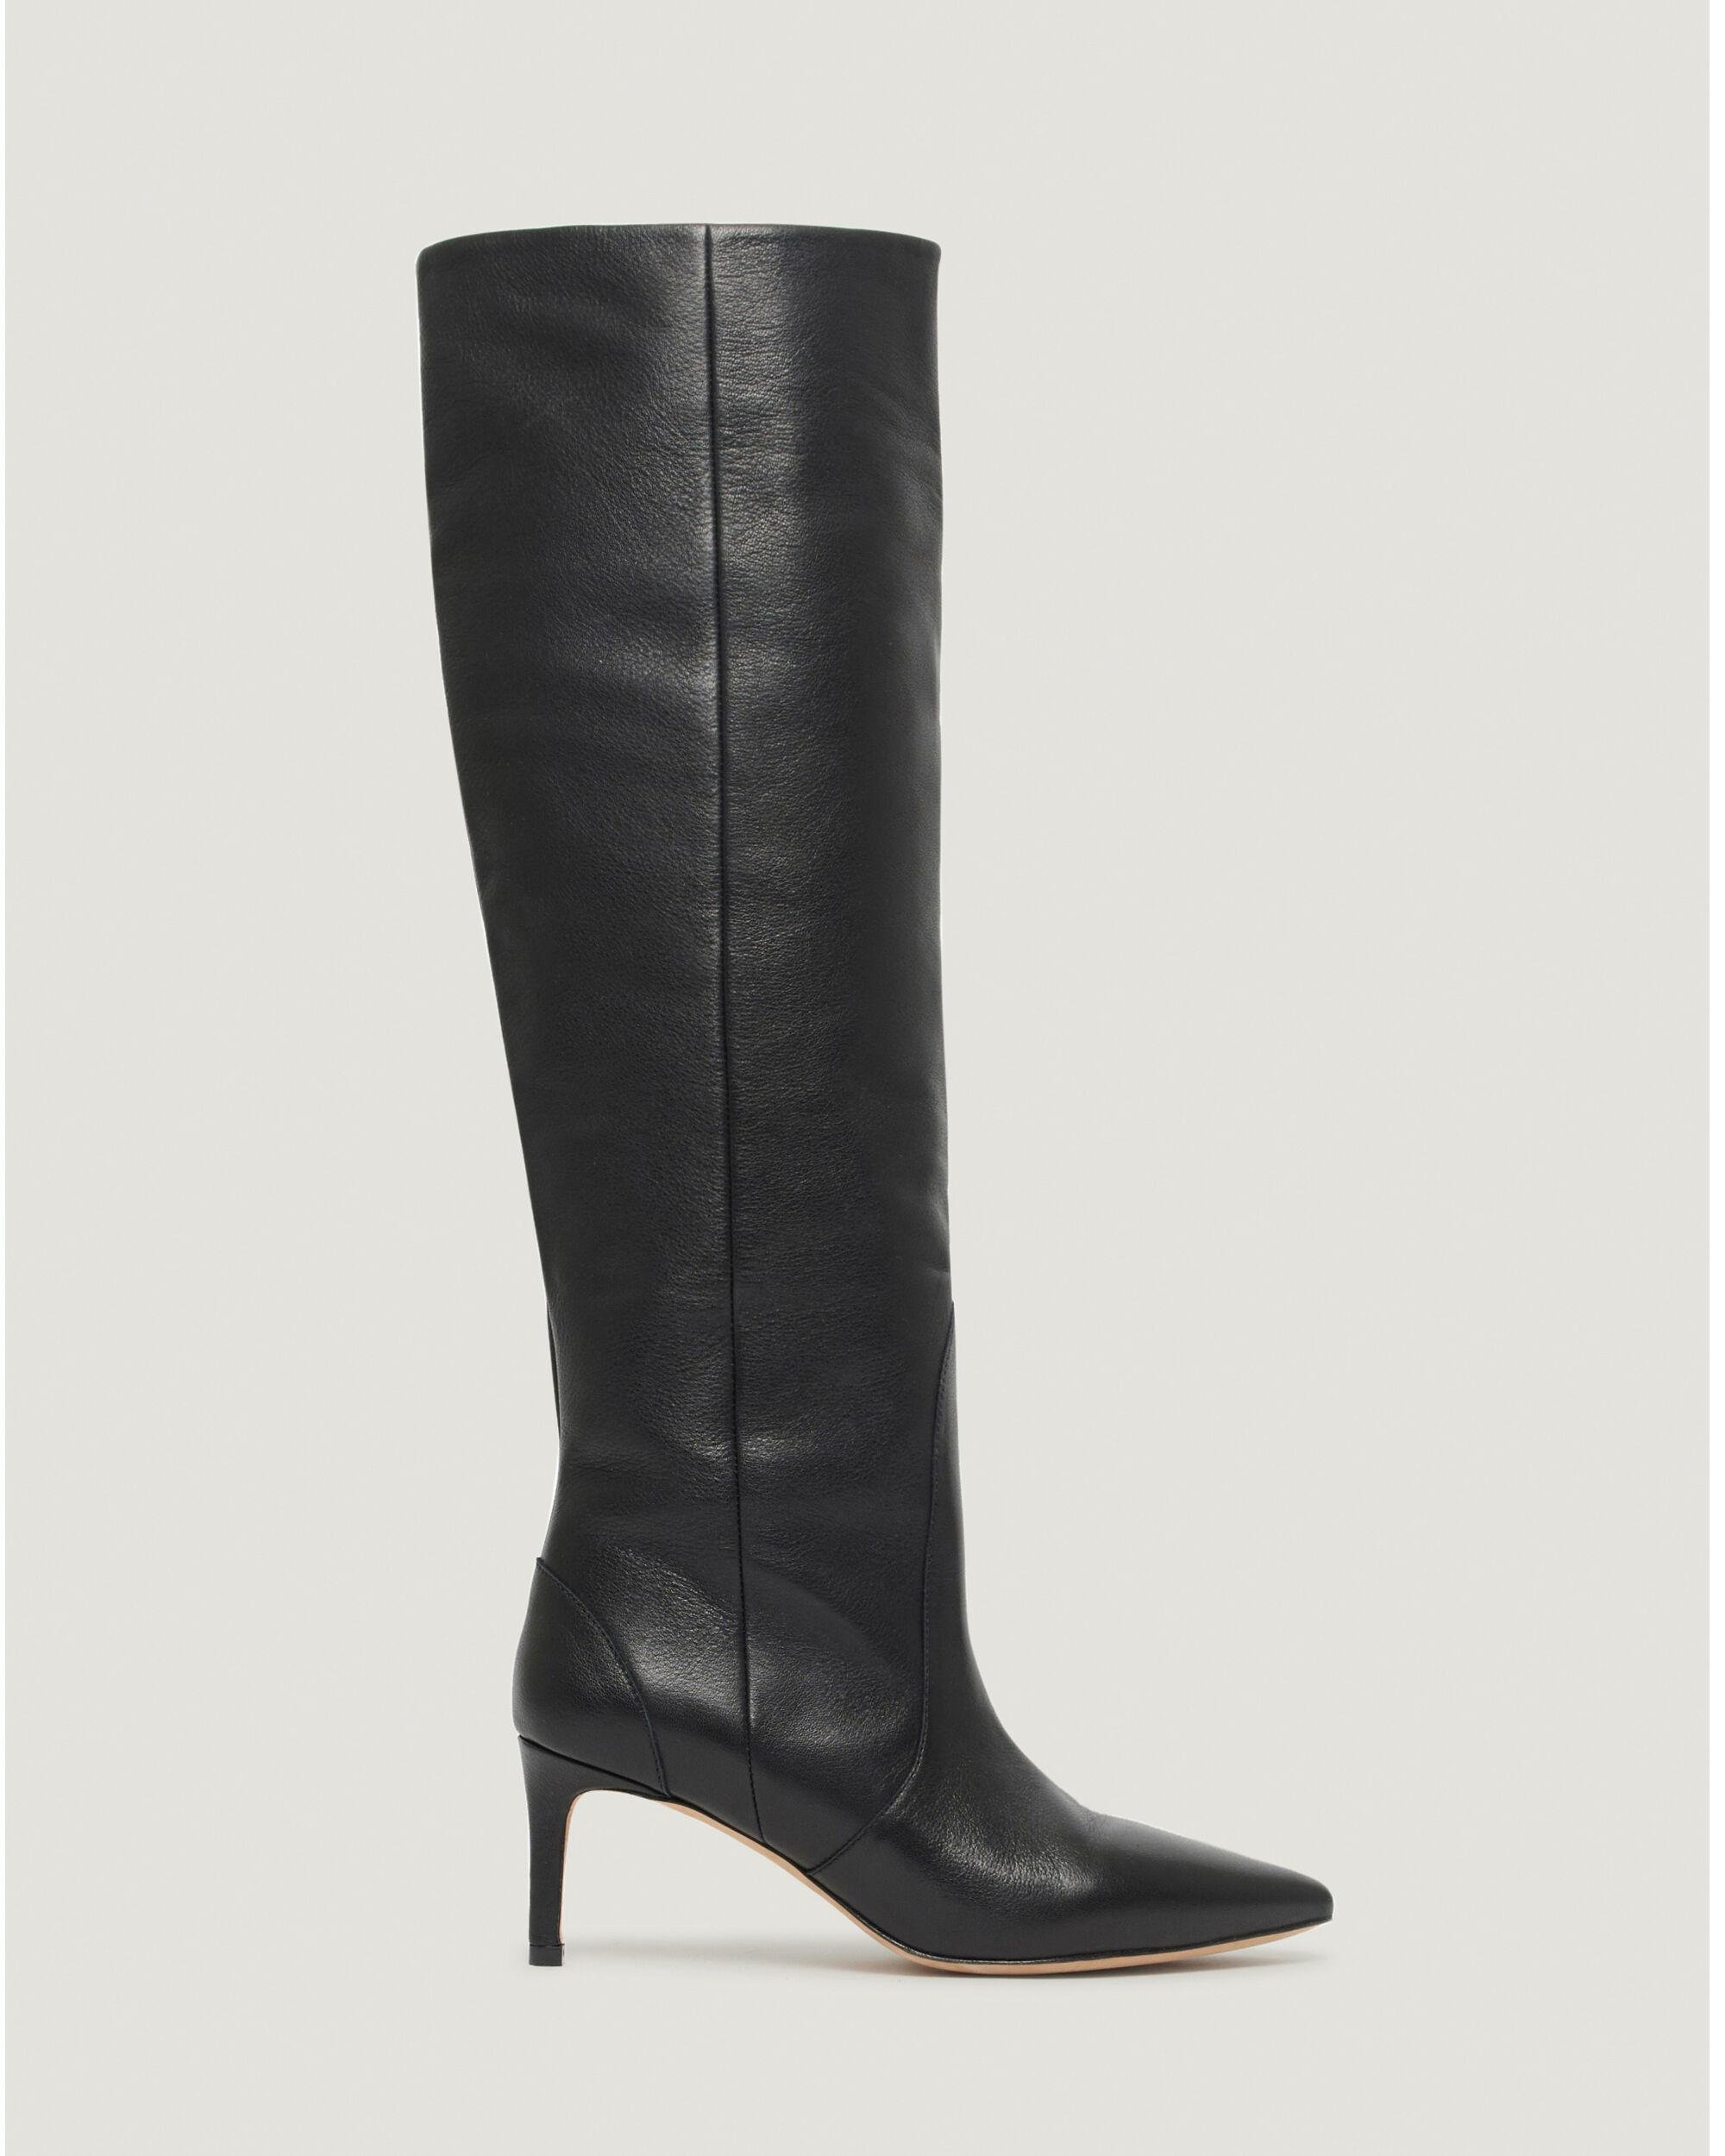 HYGIE KNEE HIGH POINTED LEATHER BOOTS